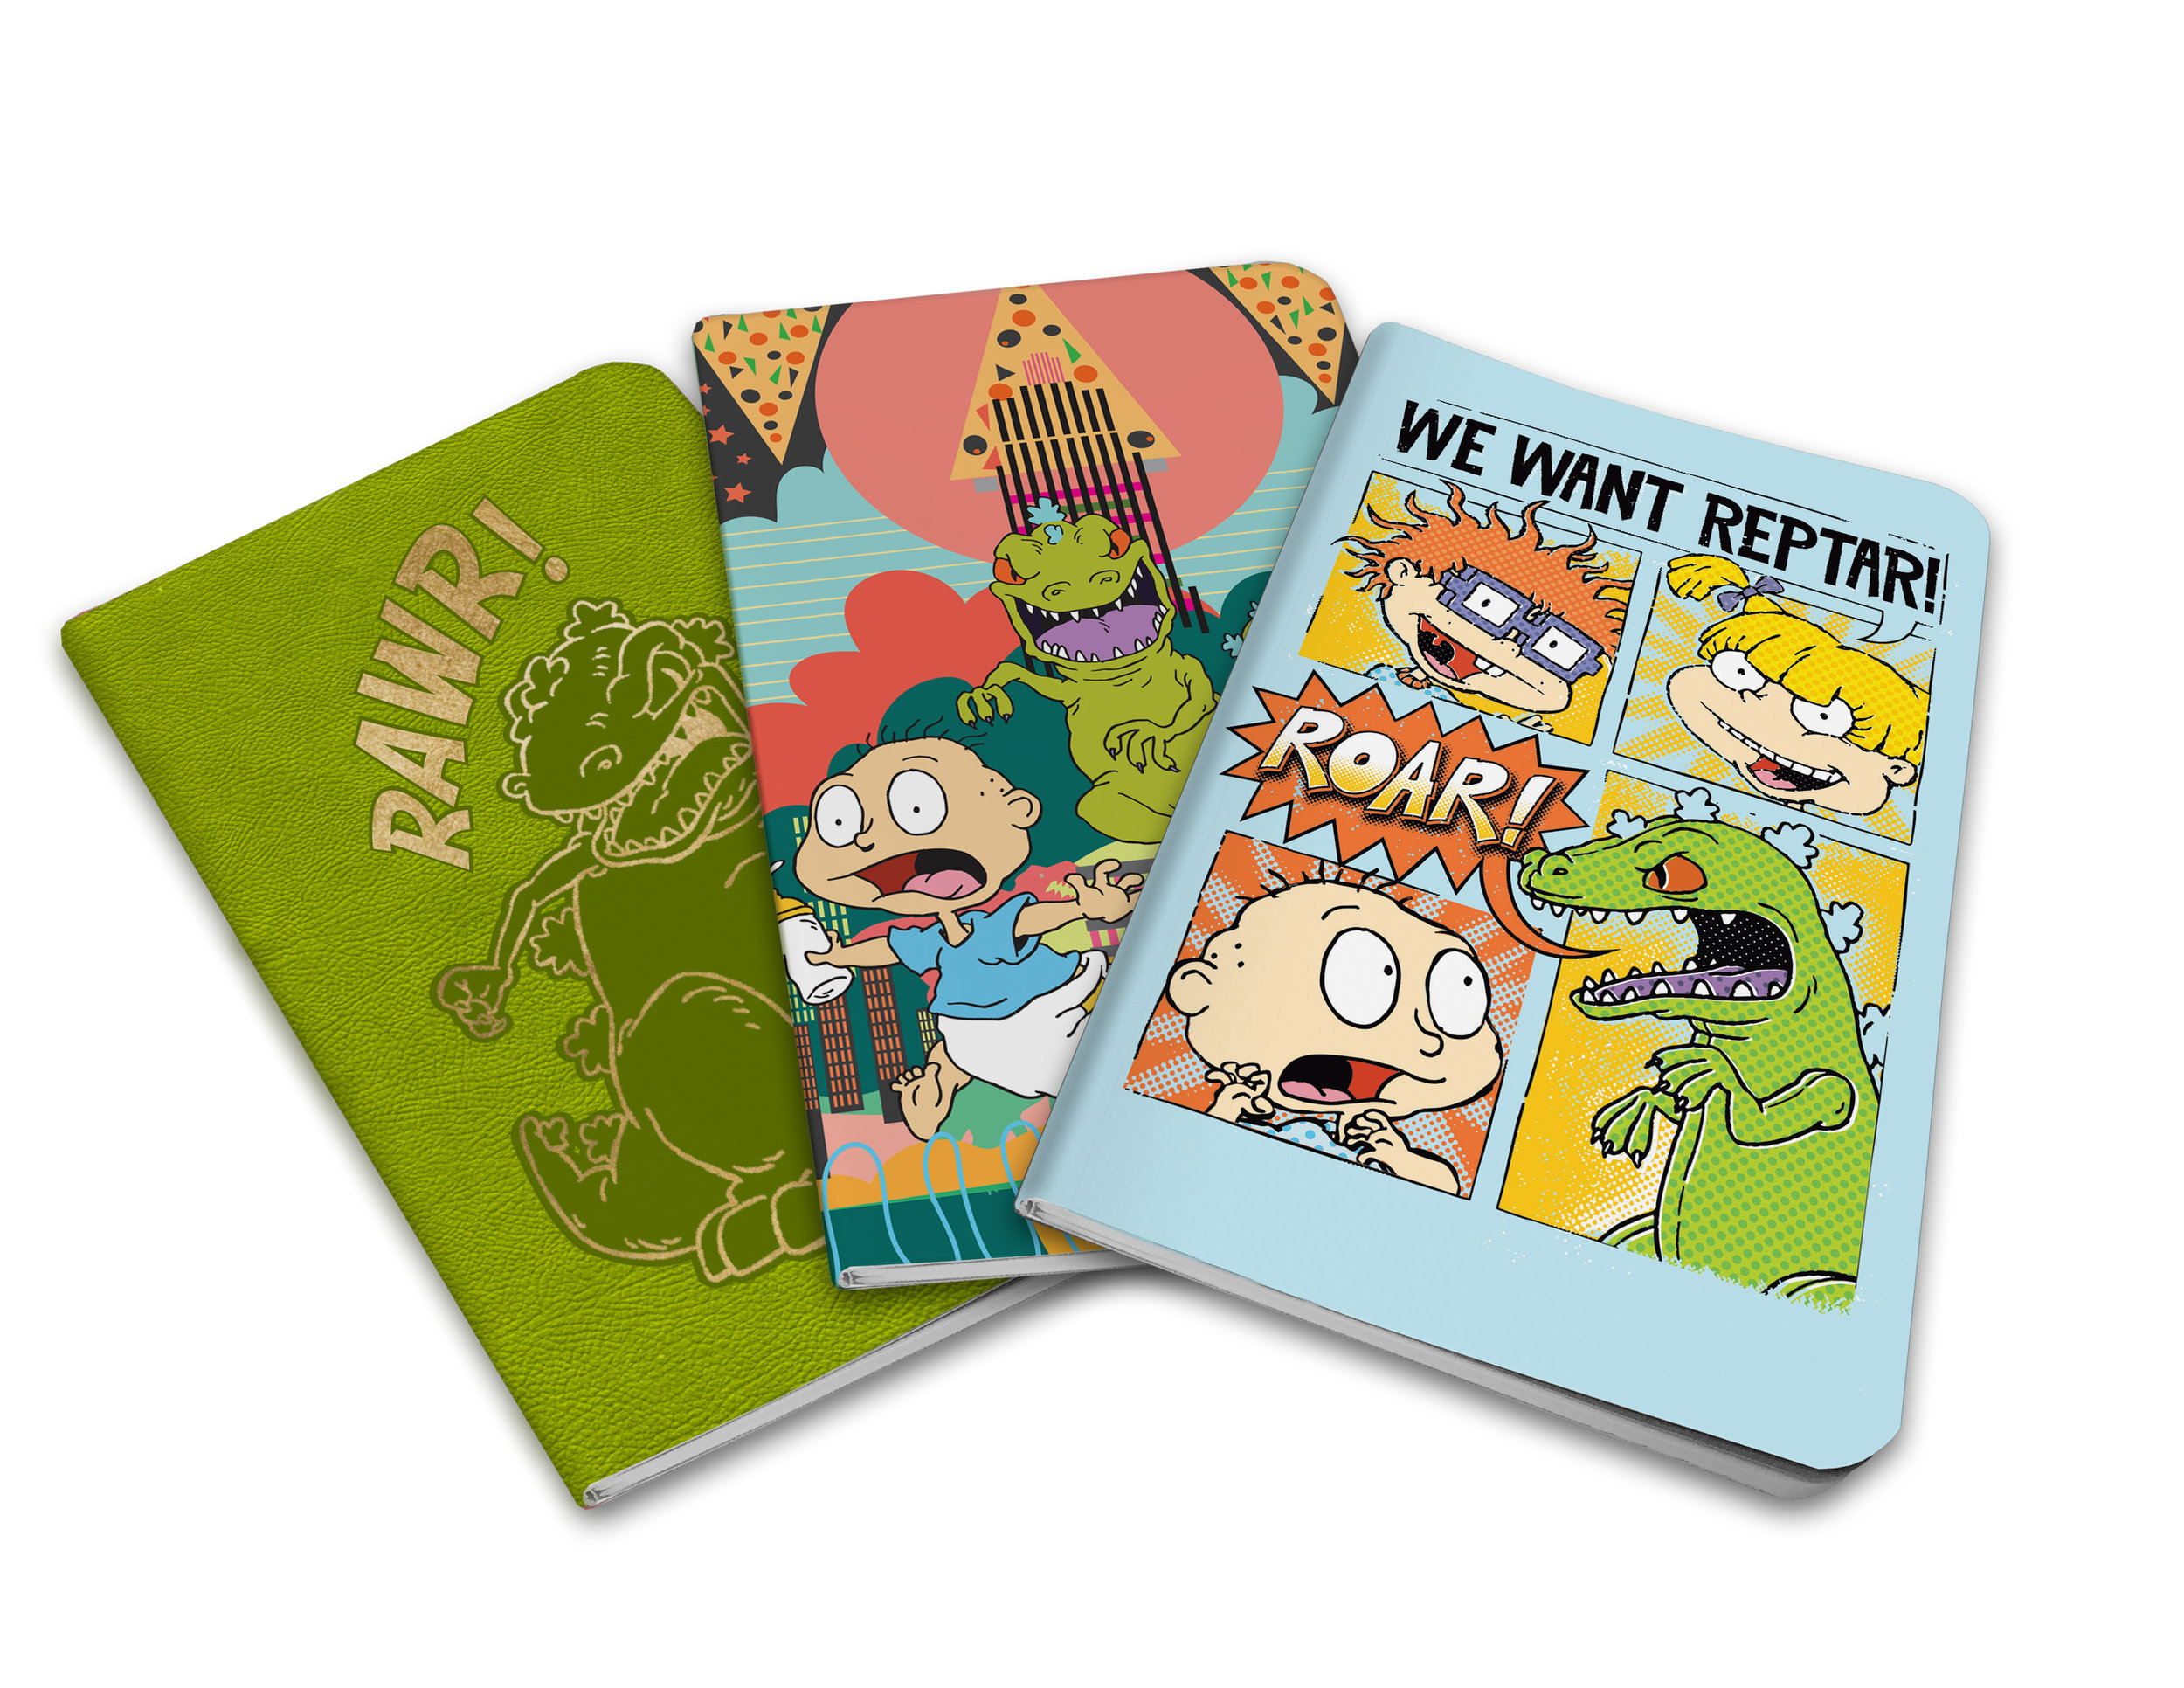 RUGRATS_Pocket Notebook Collection_SetOf3.jpg